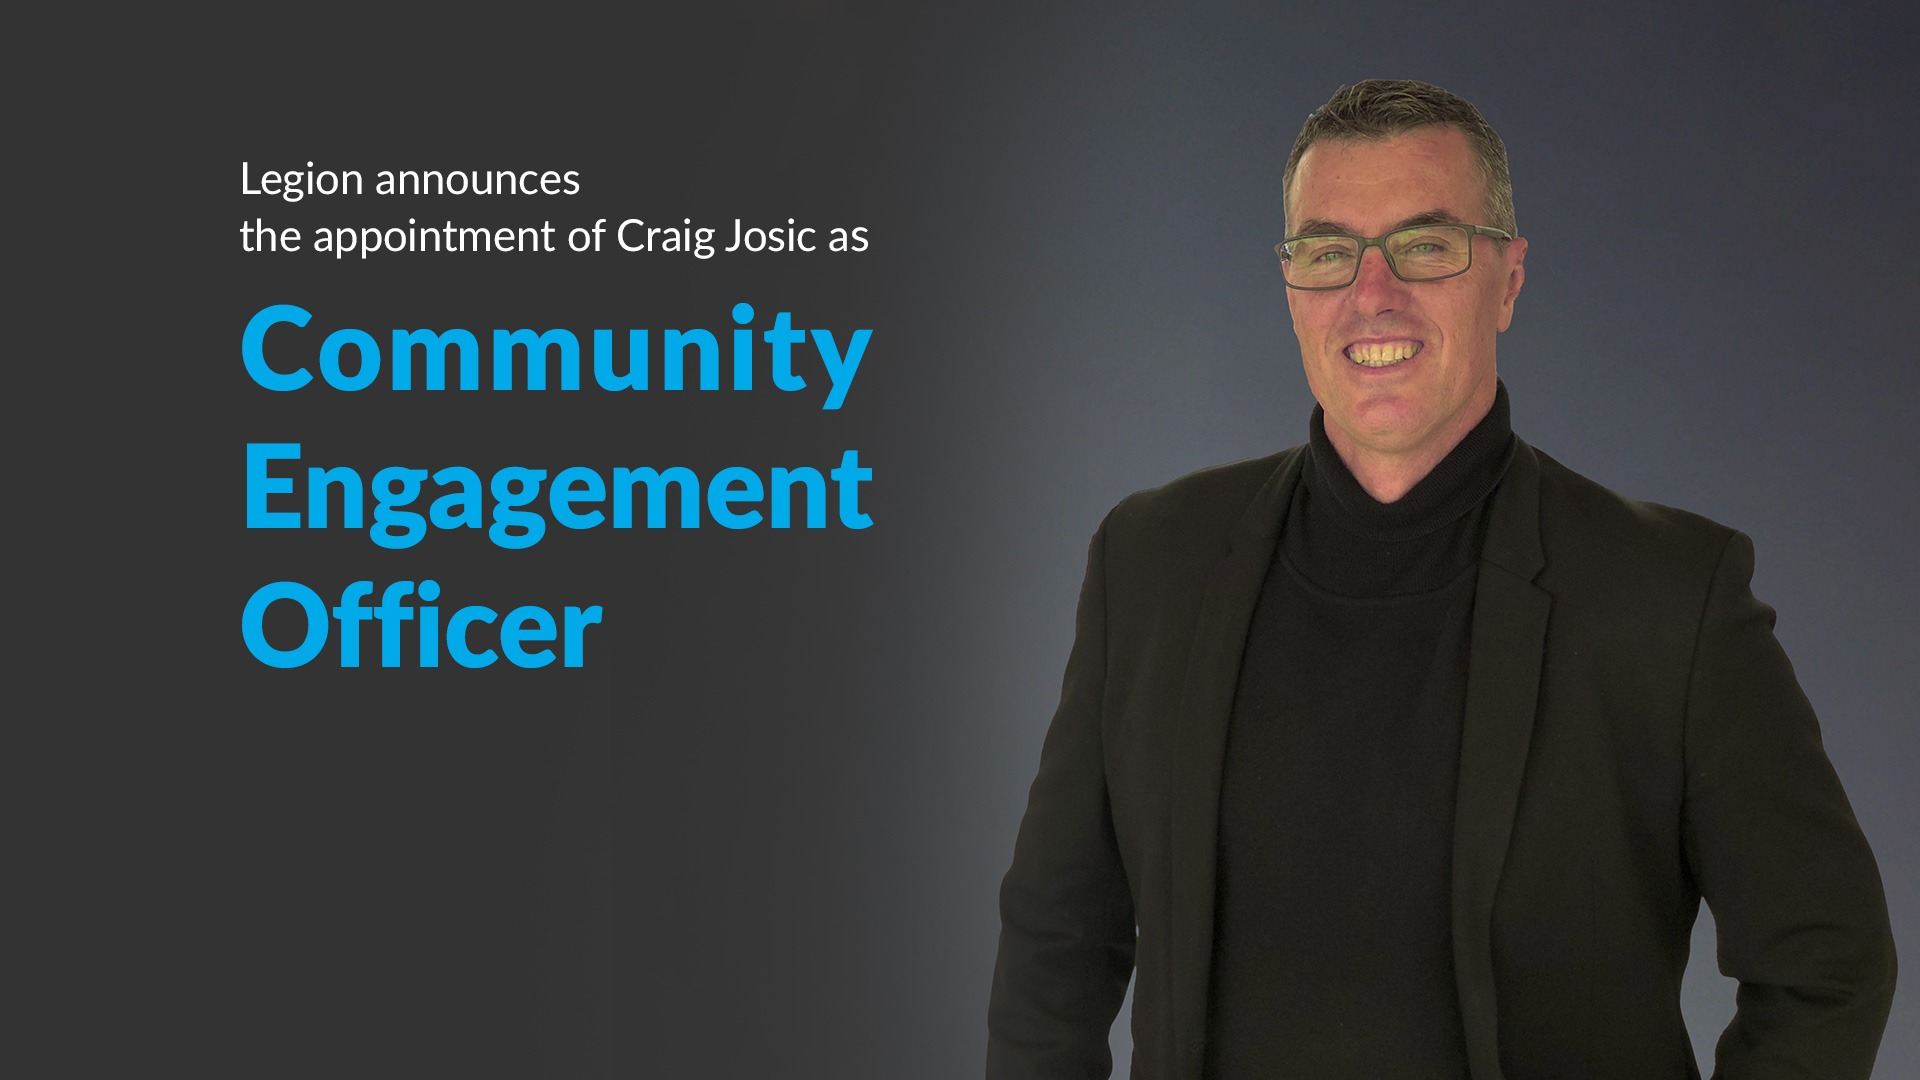 Legion appoints Craig Josic as Community Engagement officer